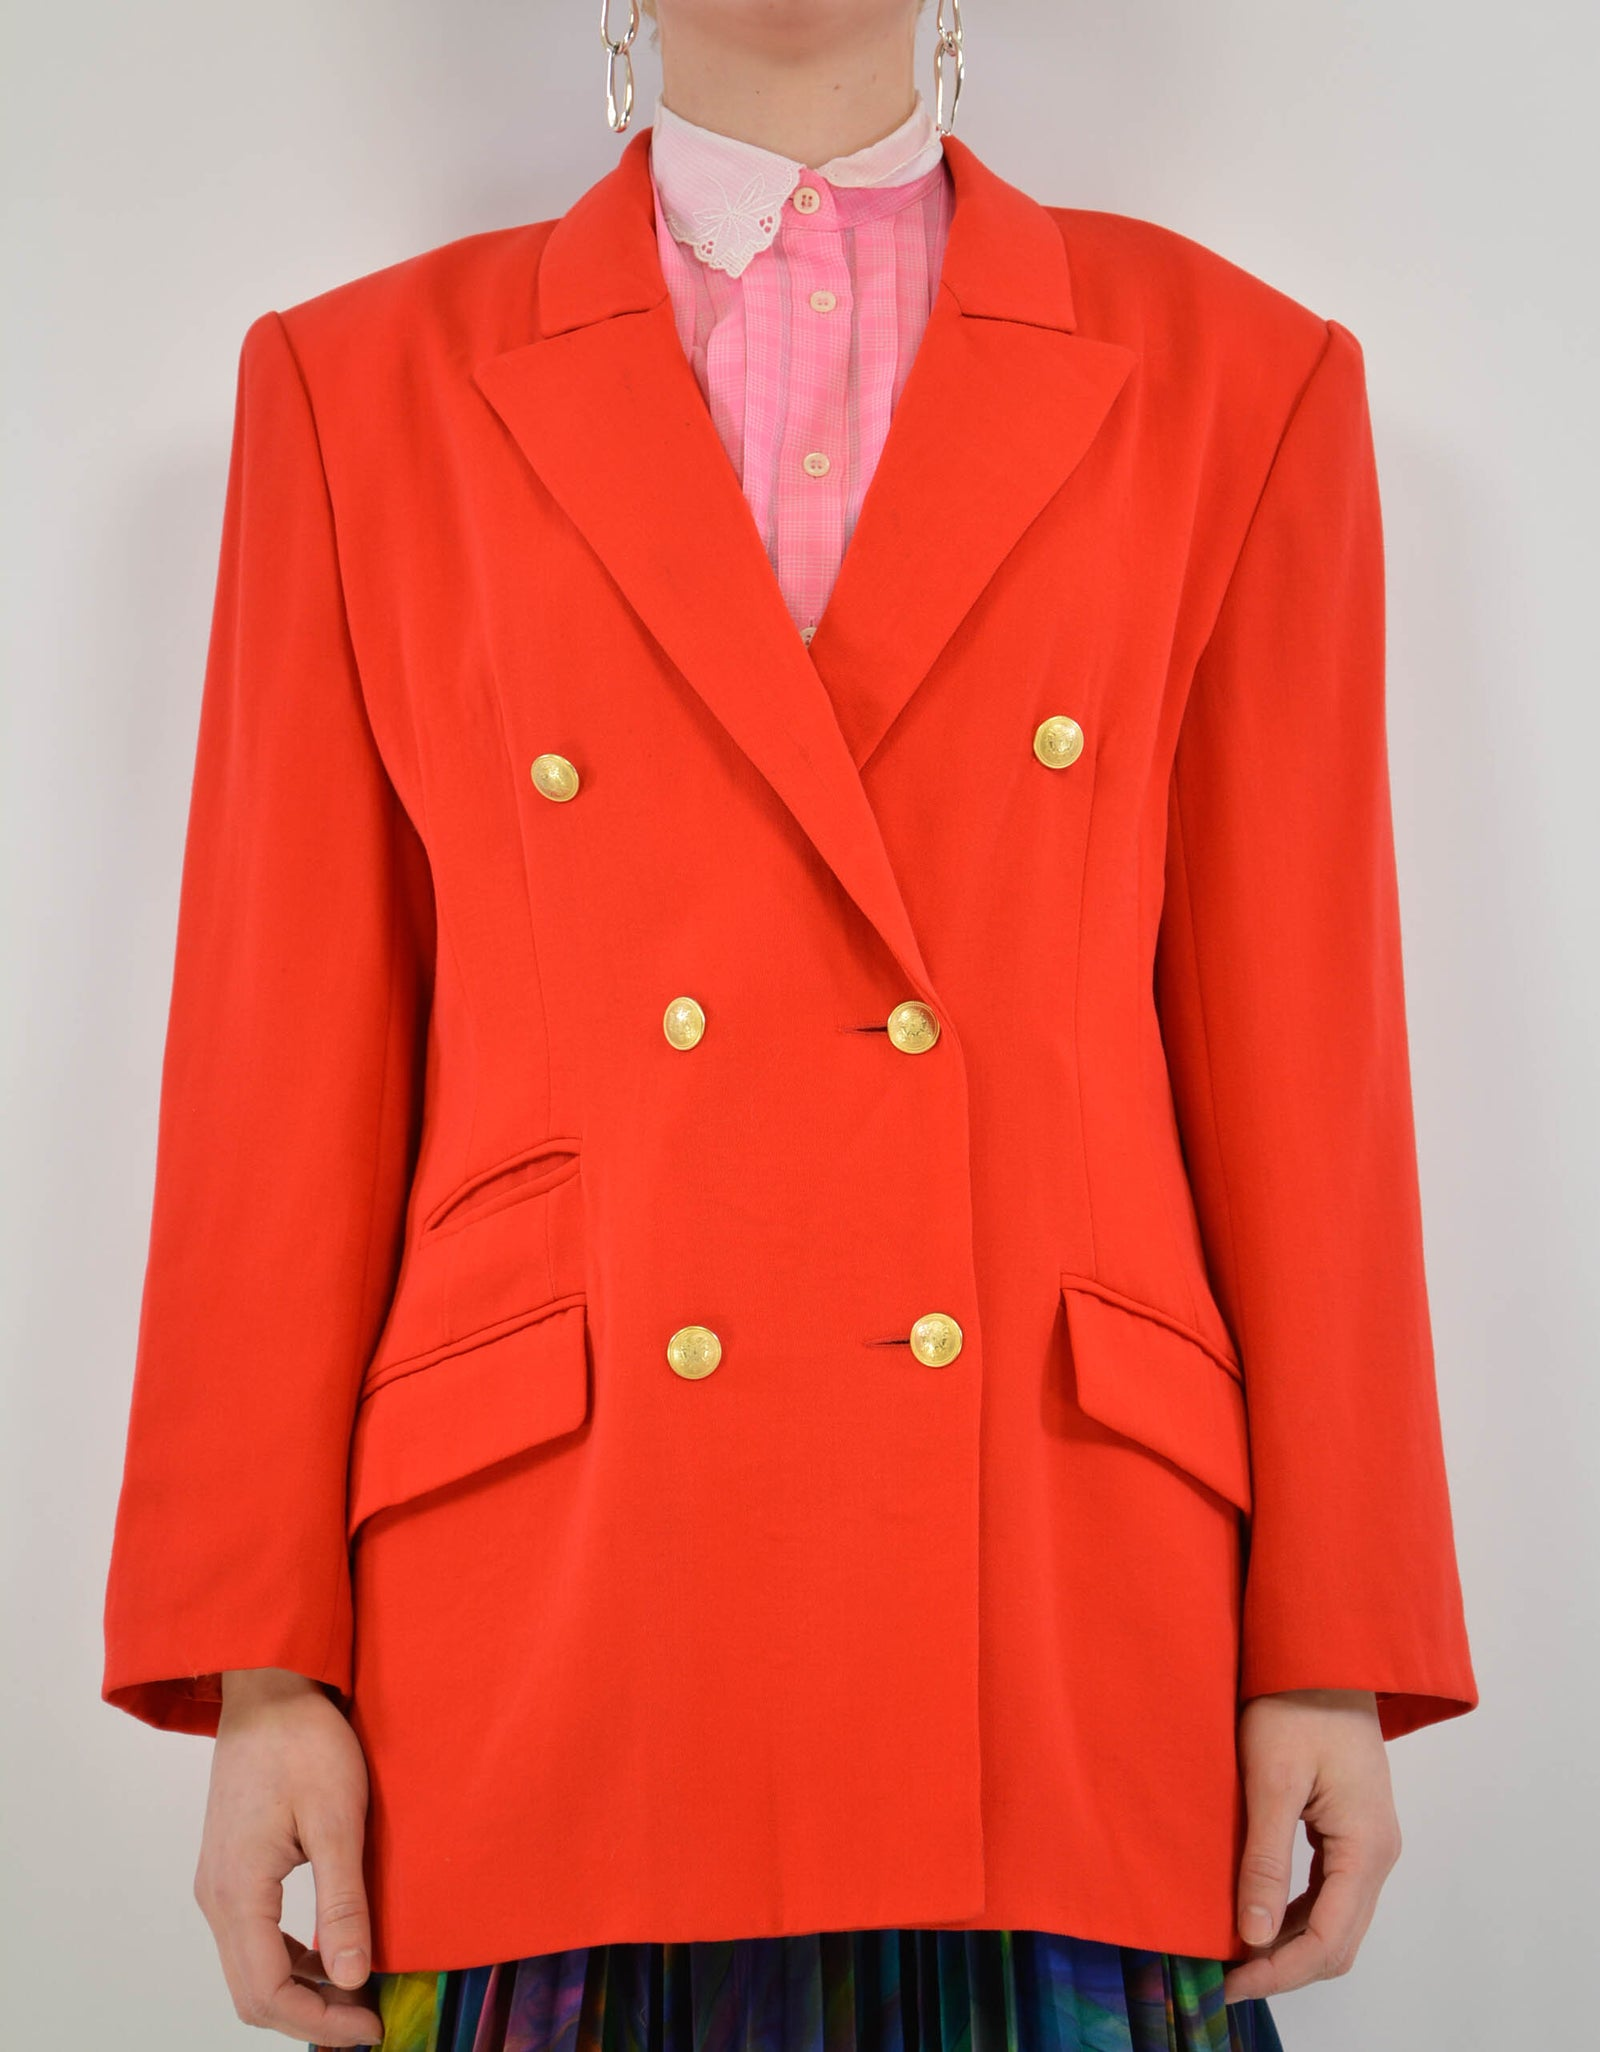 Red suit jacket - PICKNWEIGHT - VINTAGE KILO STORE